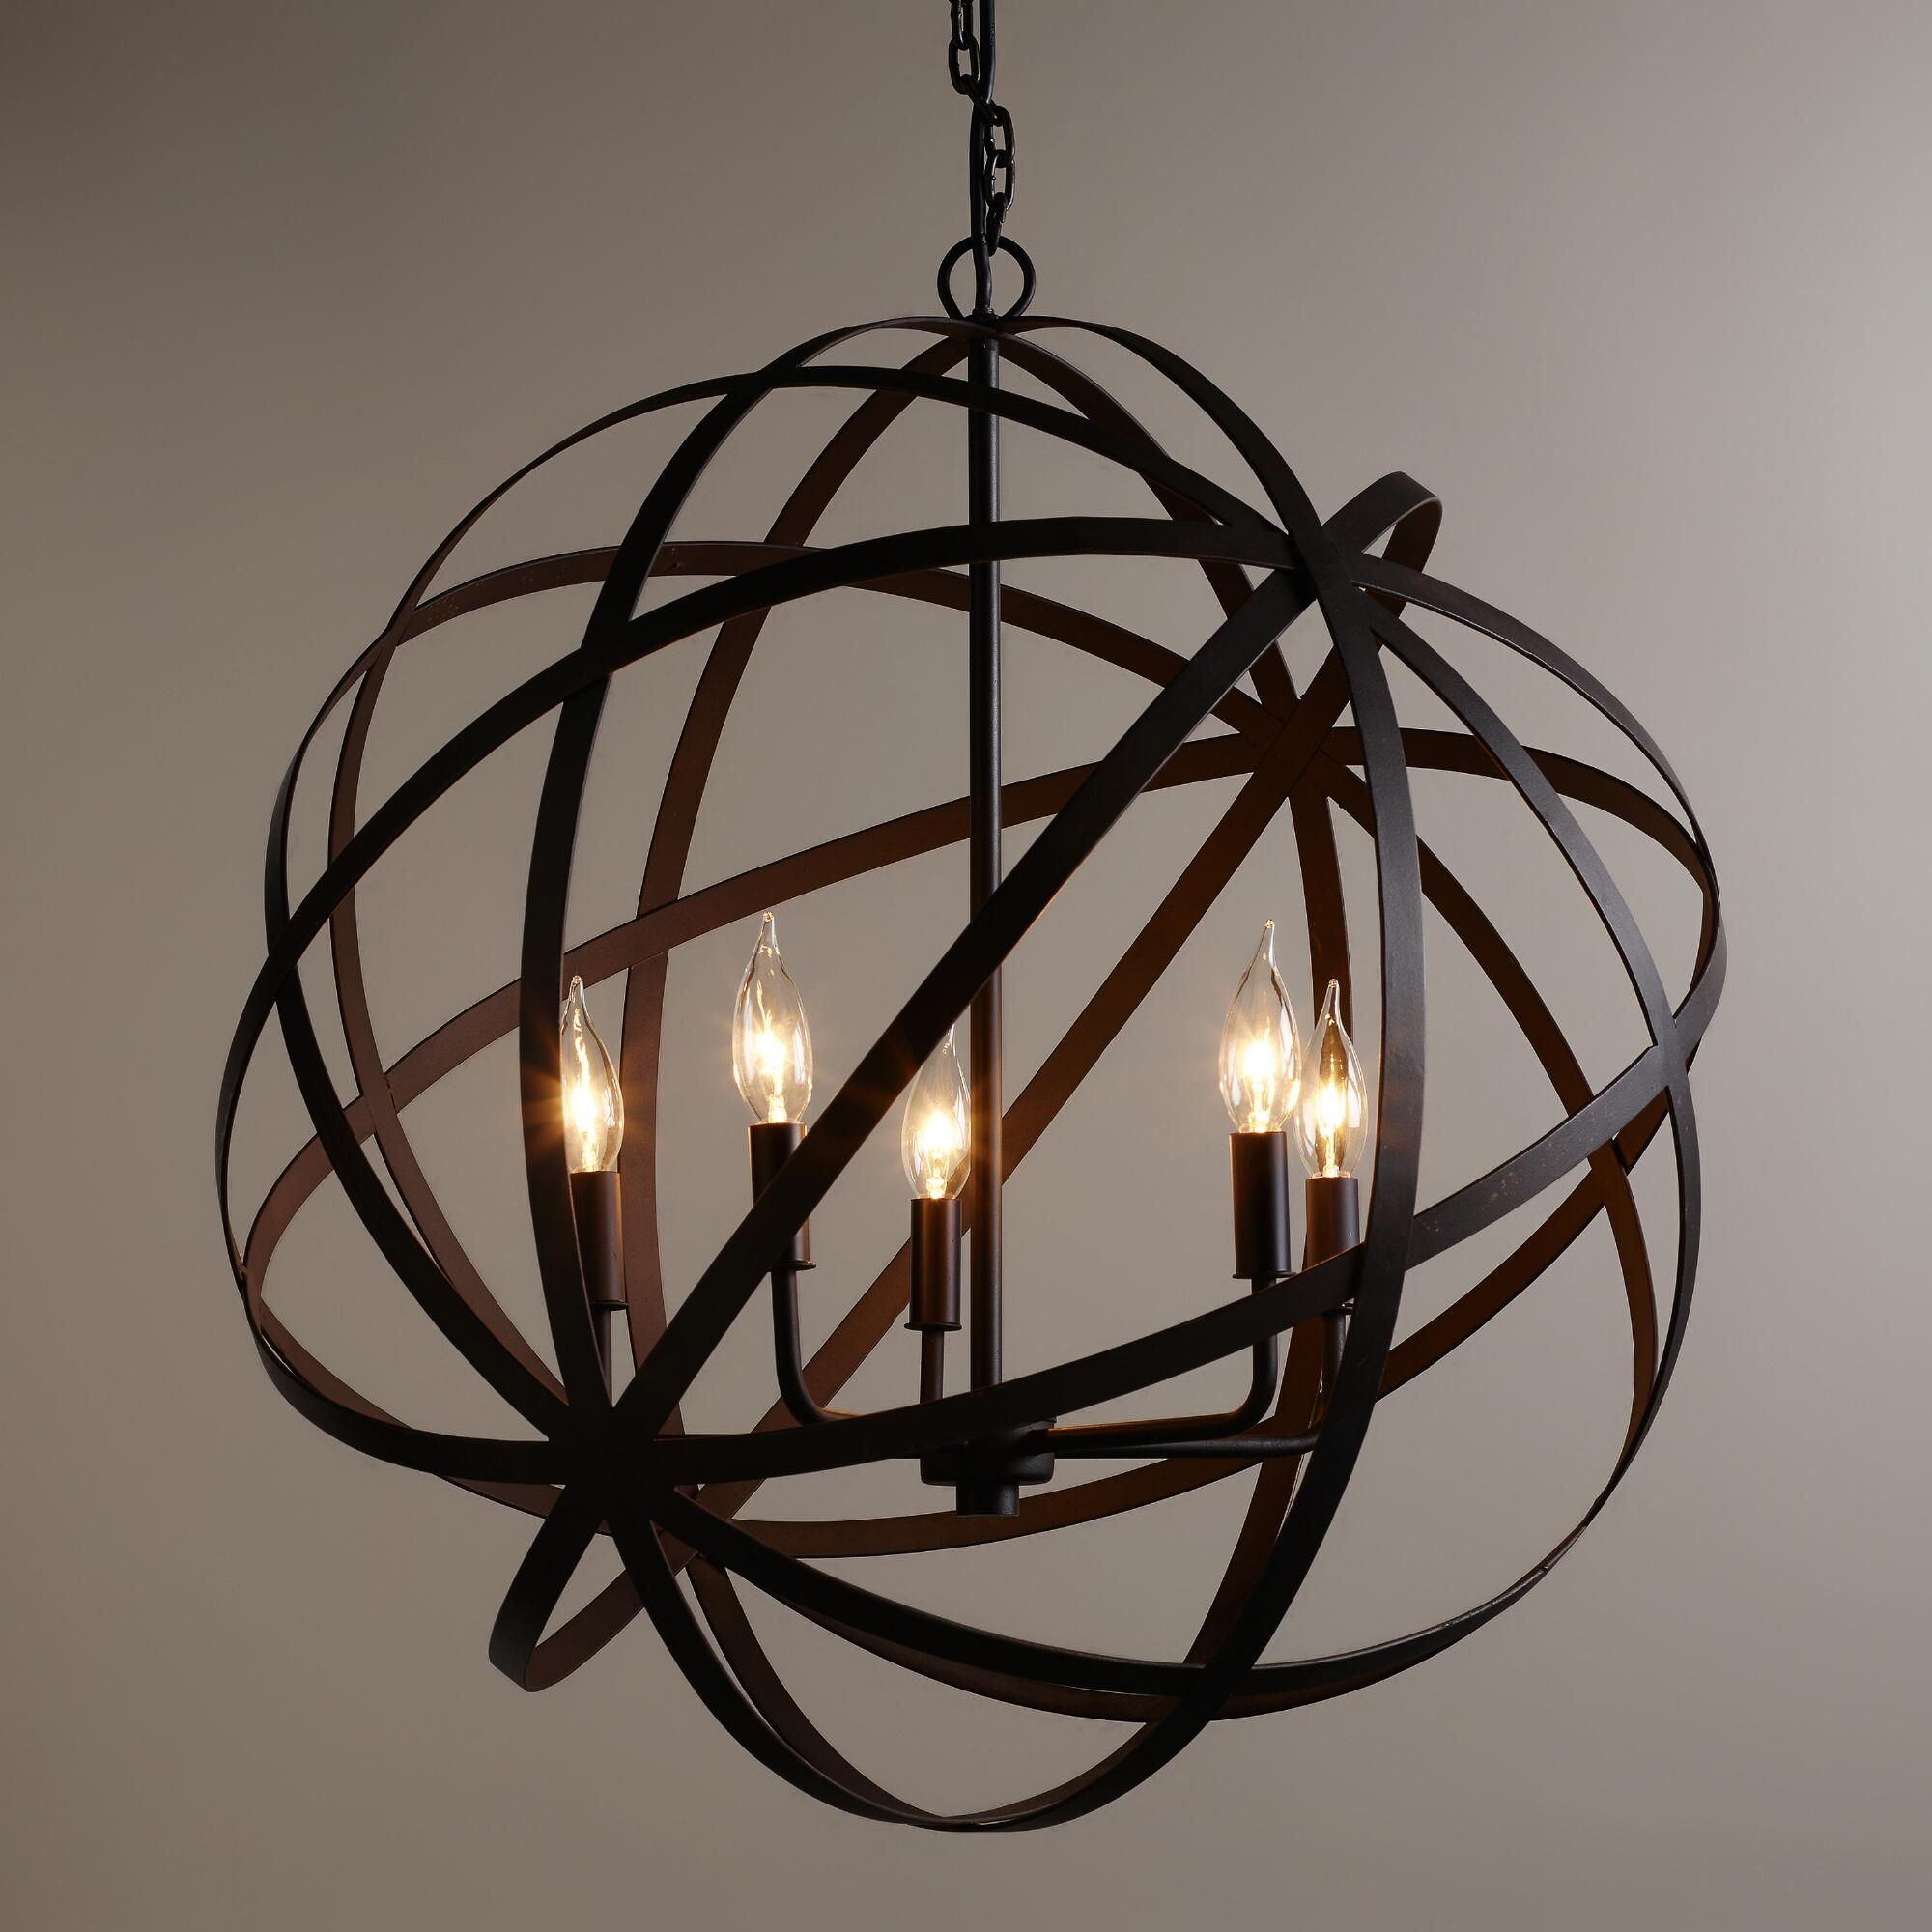 Extraordinary Large Iron Chandelier For Home Remodel Ideas With With Large Iron Chandelier (View 4 of 15)